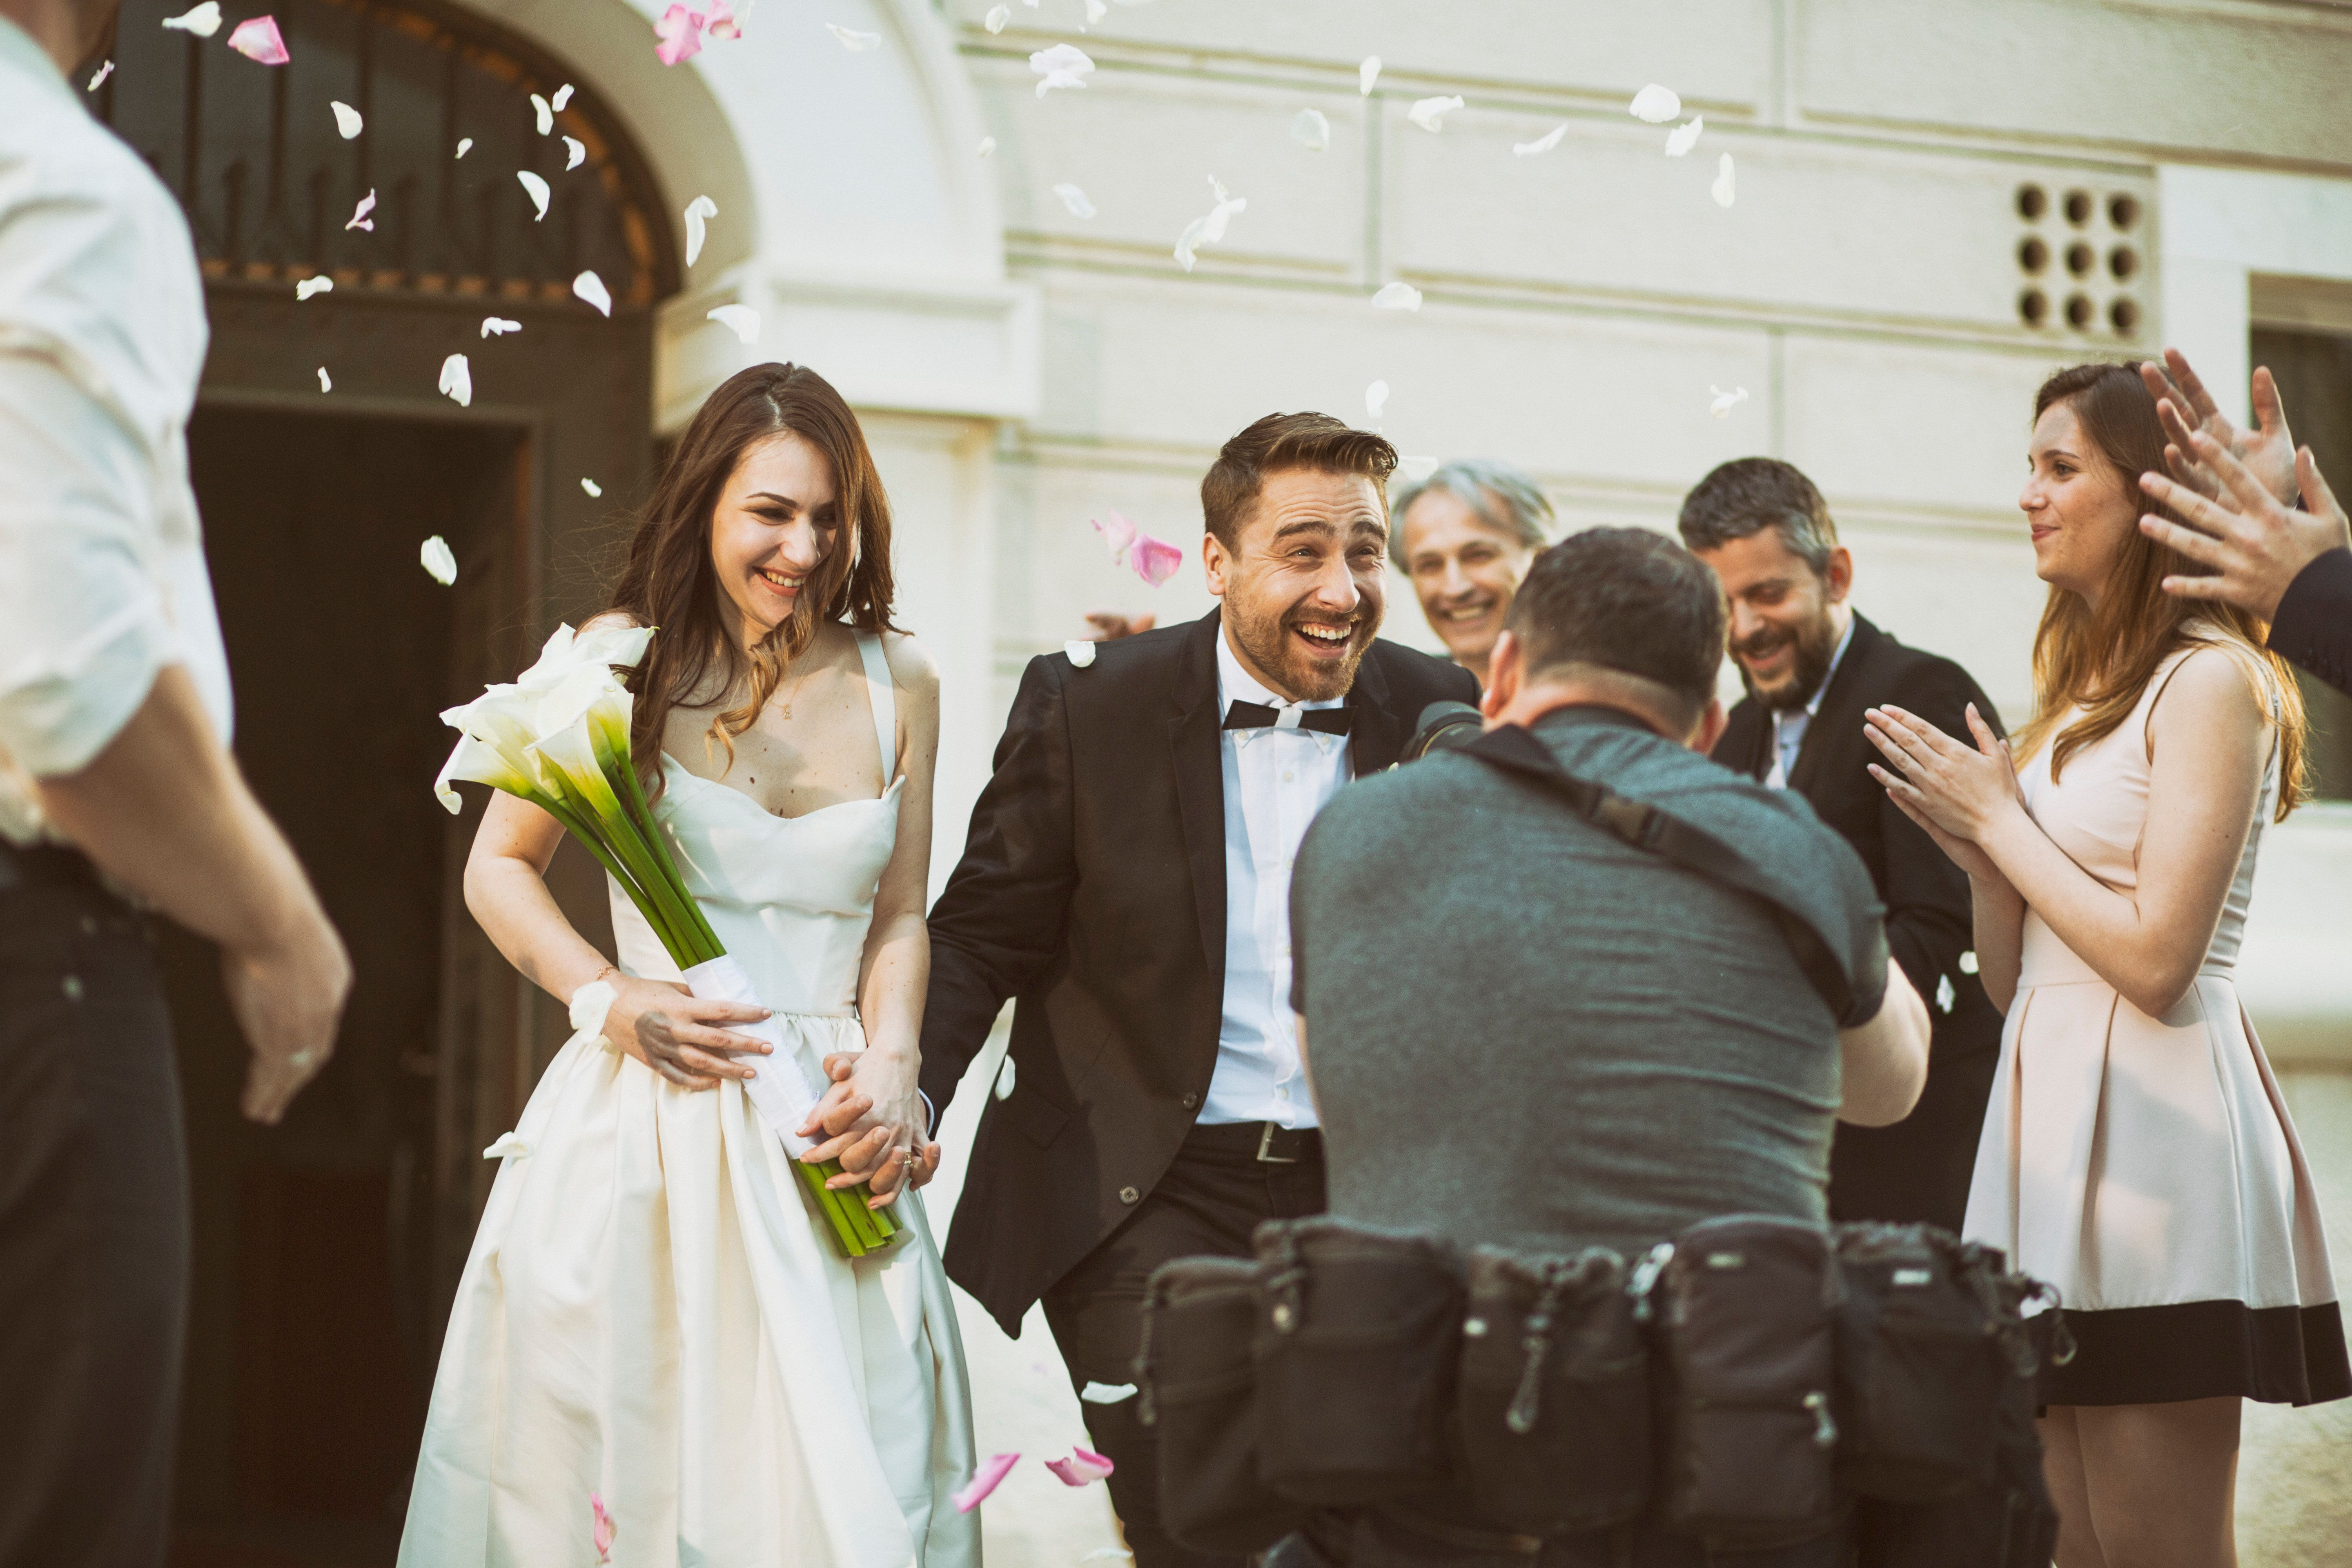 6 signs your marriage won't last according to wedding photographers forecast